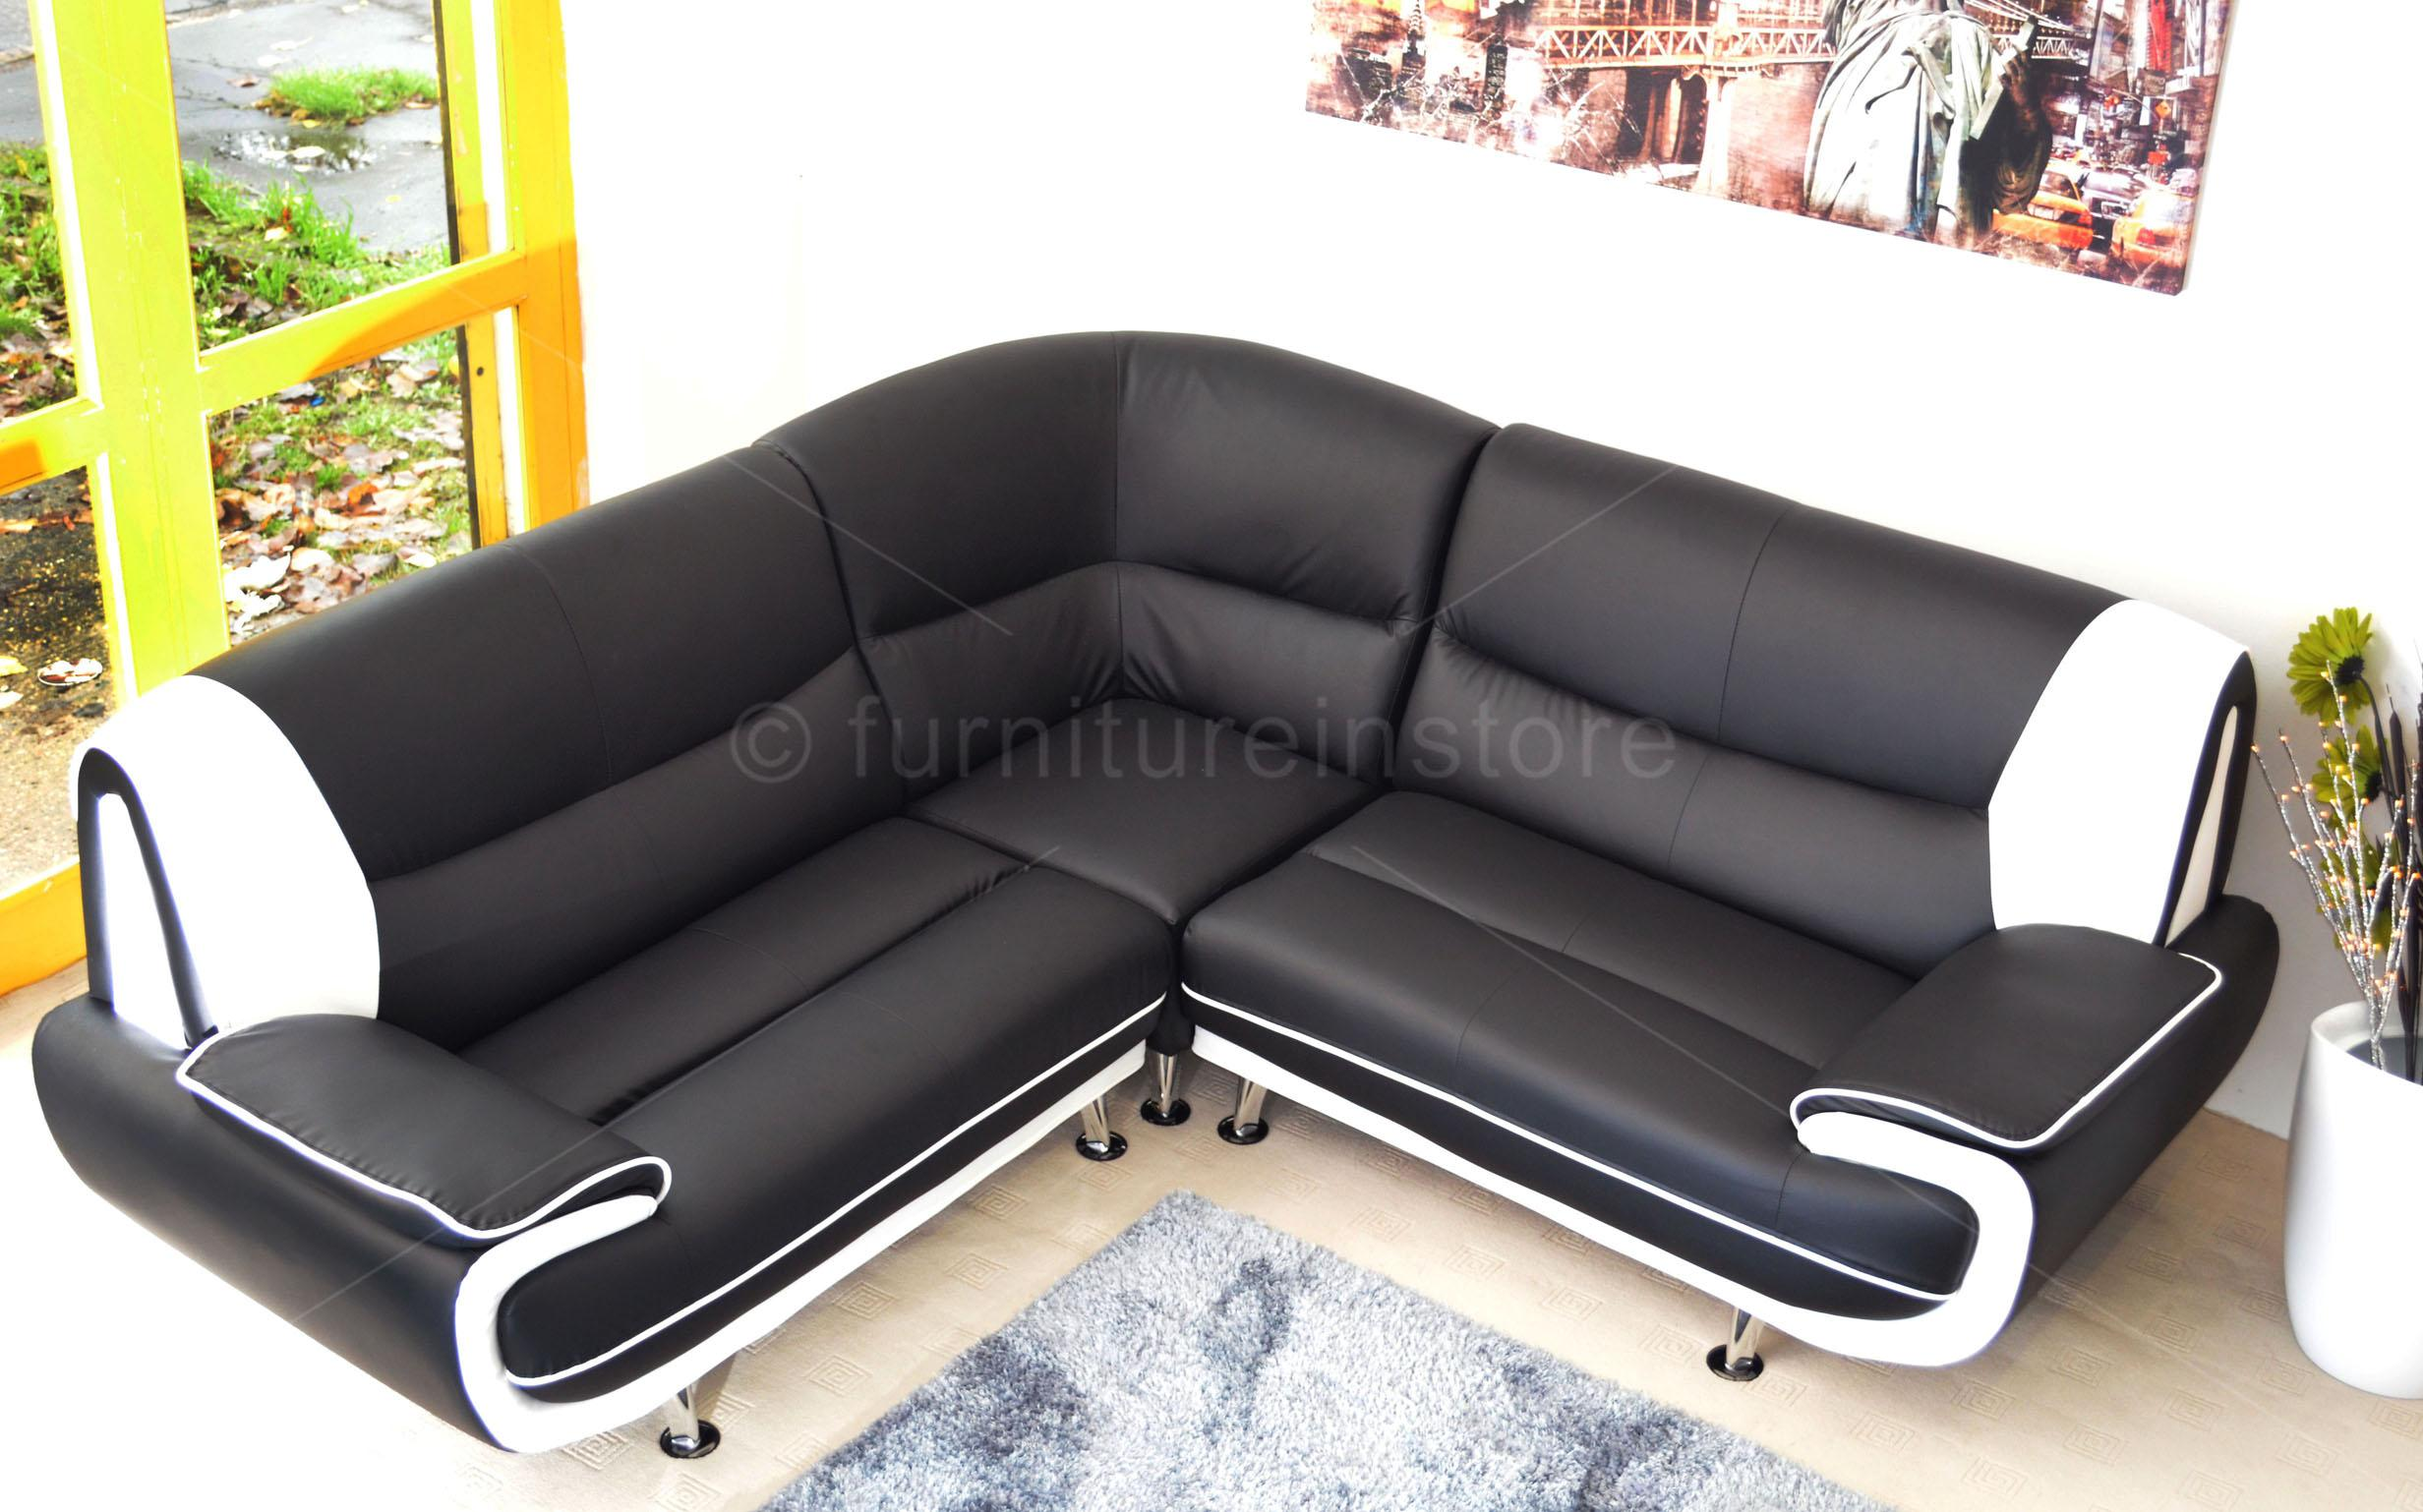 Couches And Sale Sofas